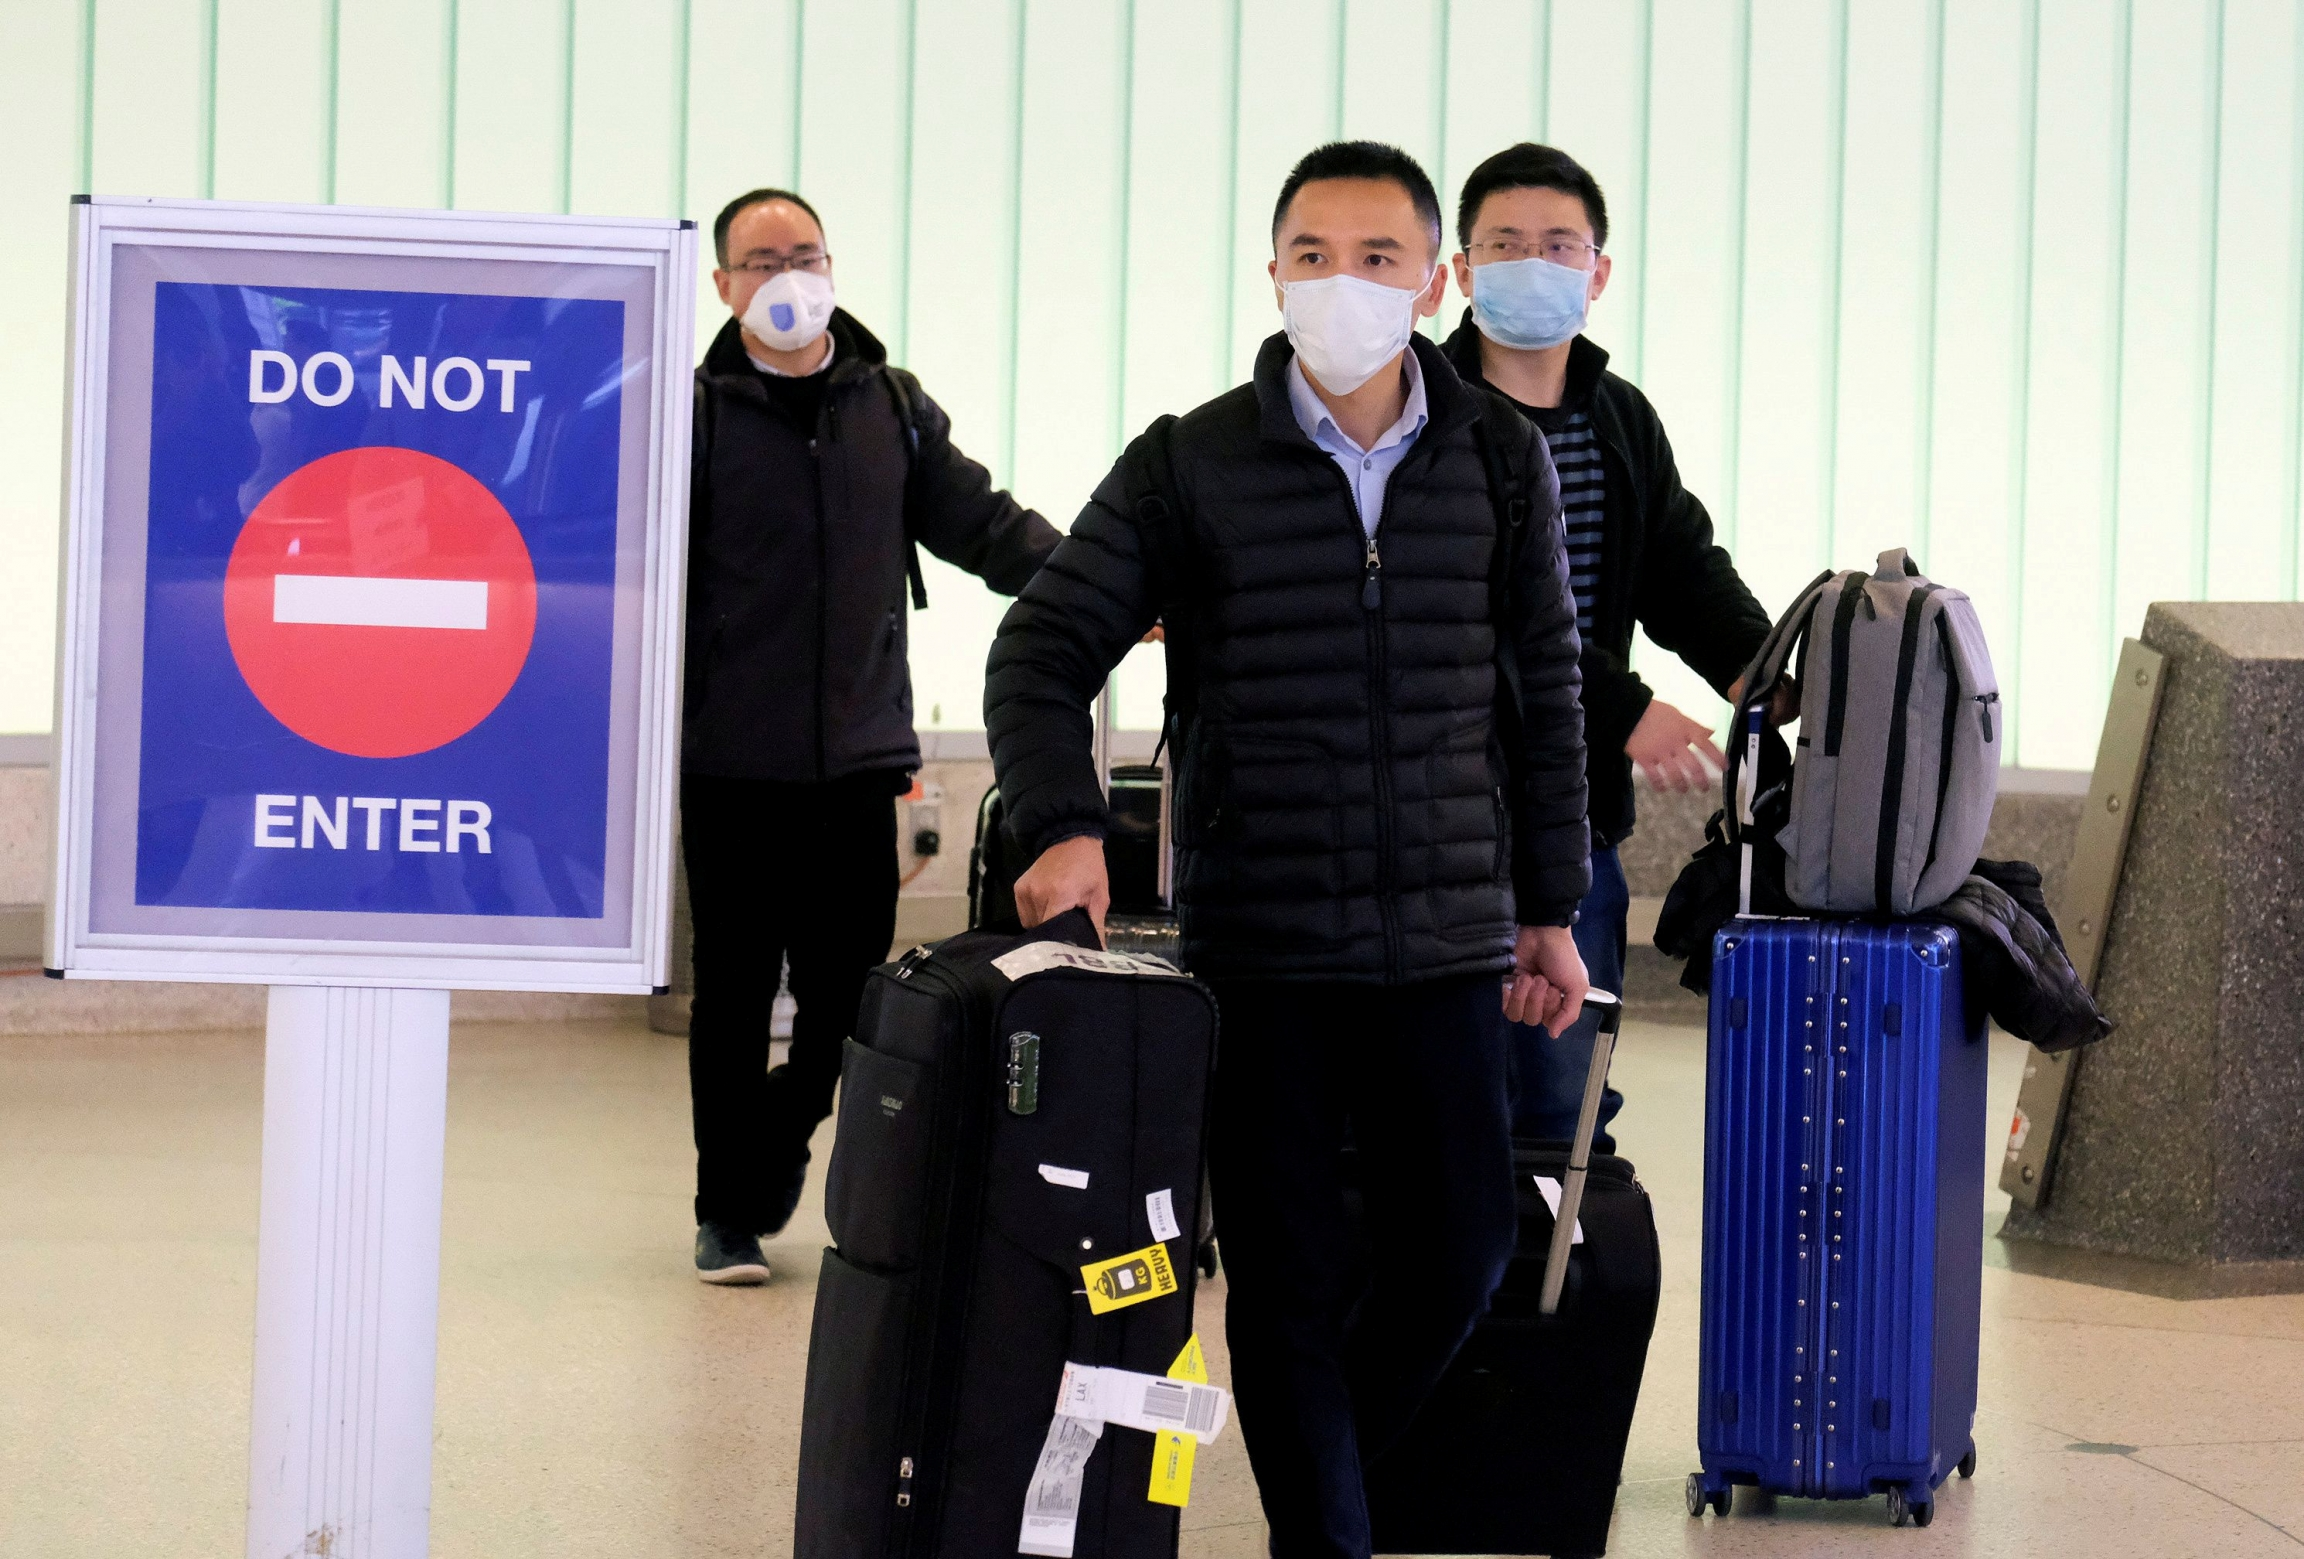 Passengers arrive at LAX from Shanghai, China, after a positive case of the coronavirus was announced in the Orange County suburb of Los Angeles, Jan. 26, 2020.